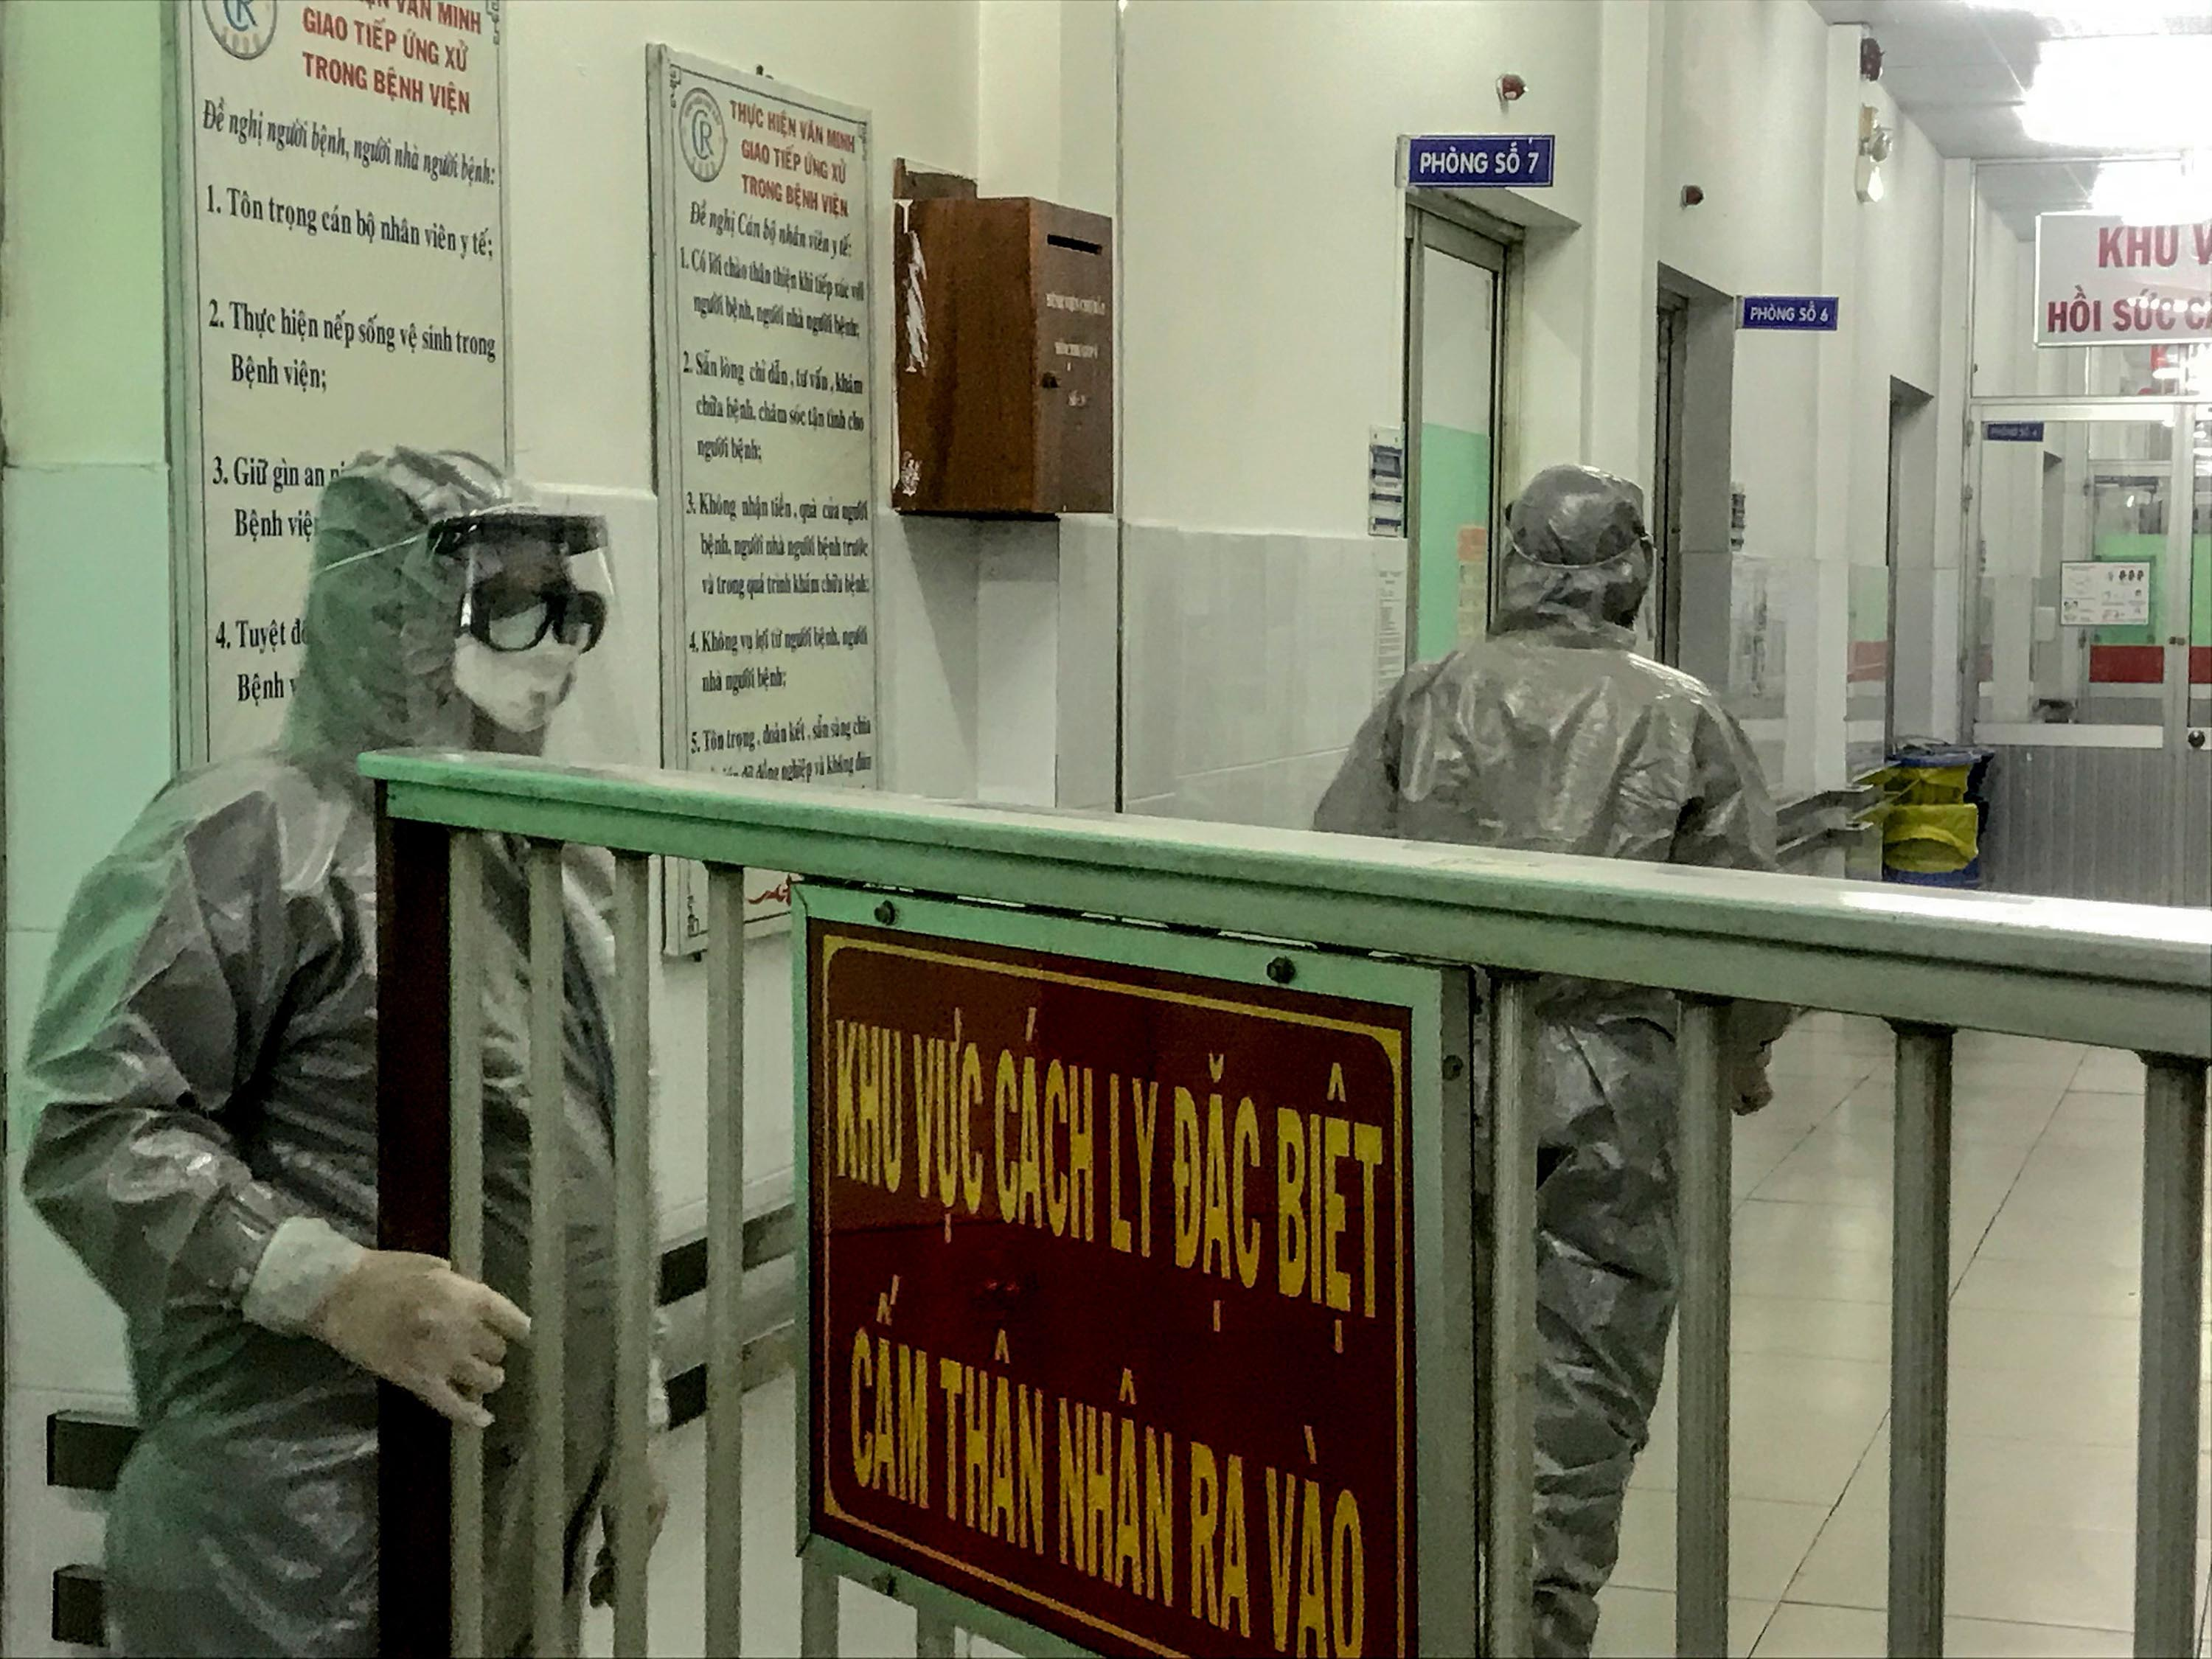 Medical workers enter an isolation area to visit coronavirus patients in Cho Ray hospital in Ho Chi Minh City, Vietnam, on January 23.